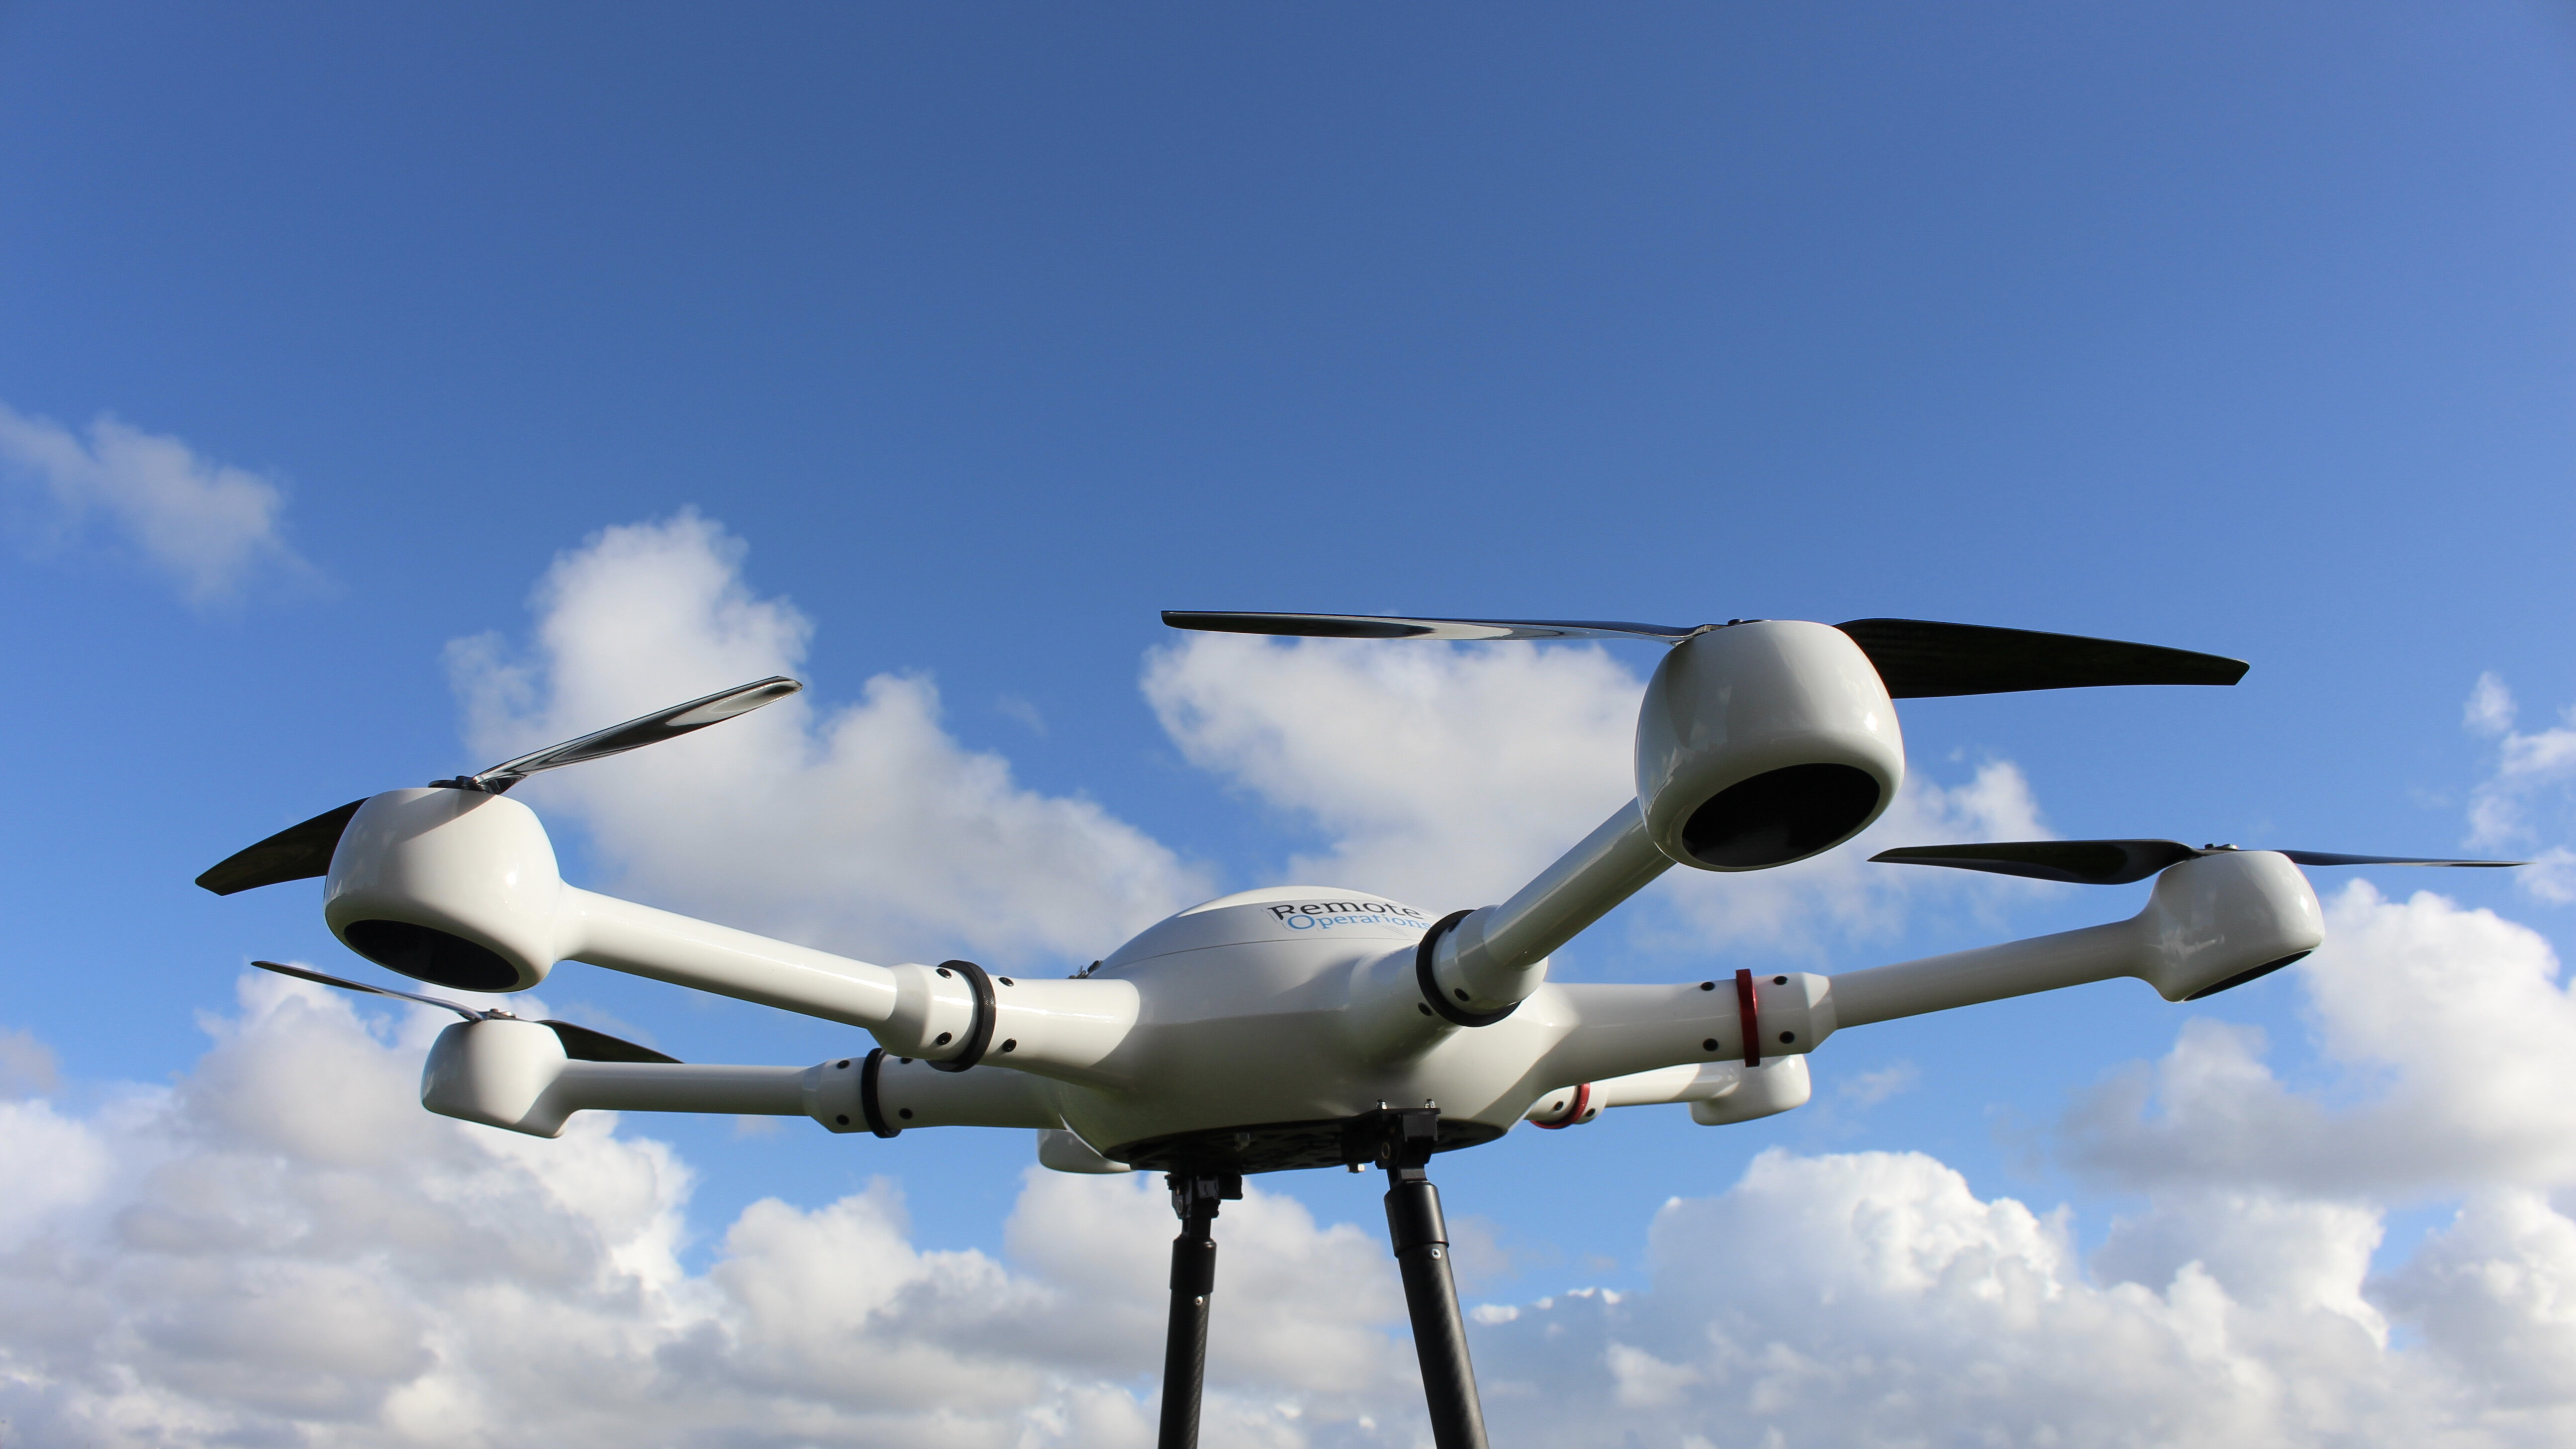 Remote Operations drone with sky and cloud background